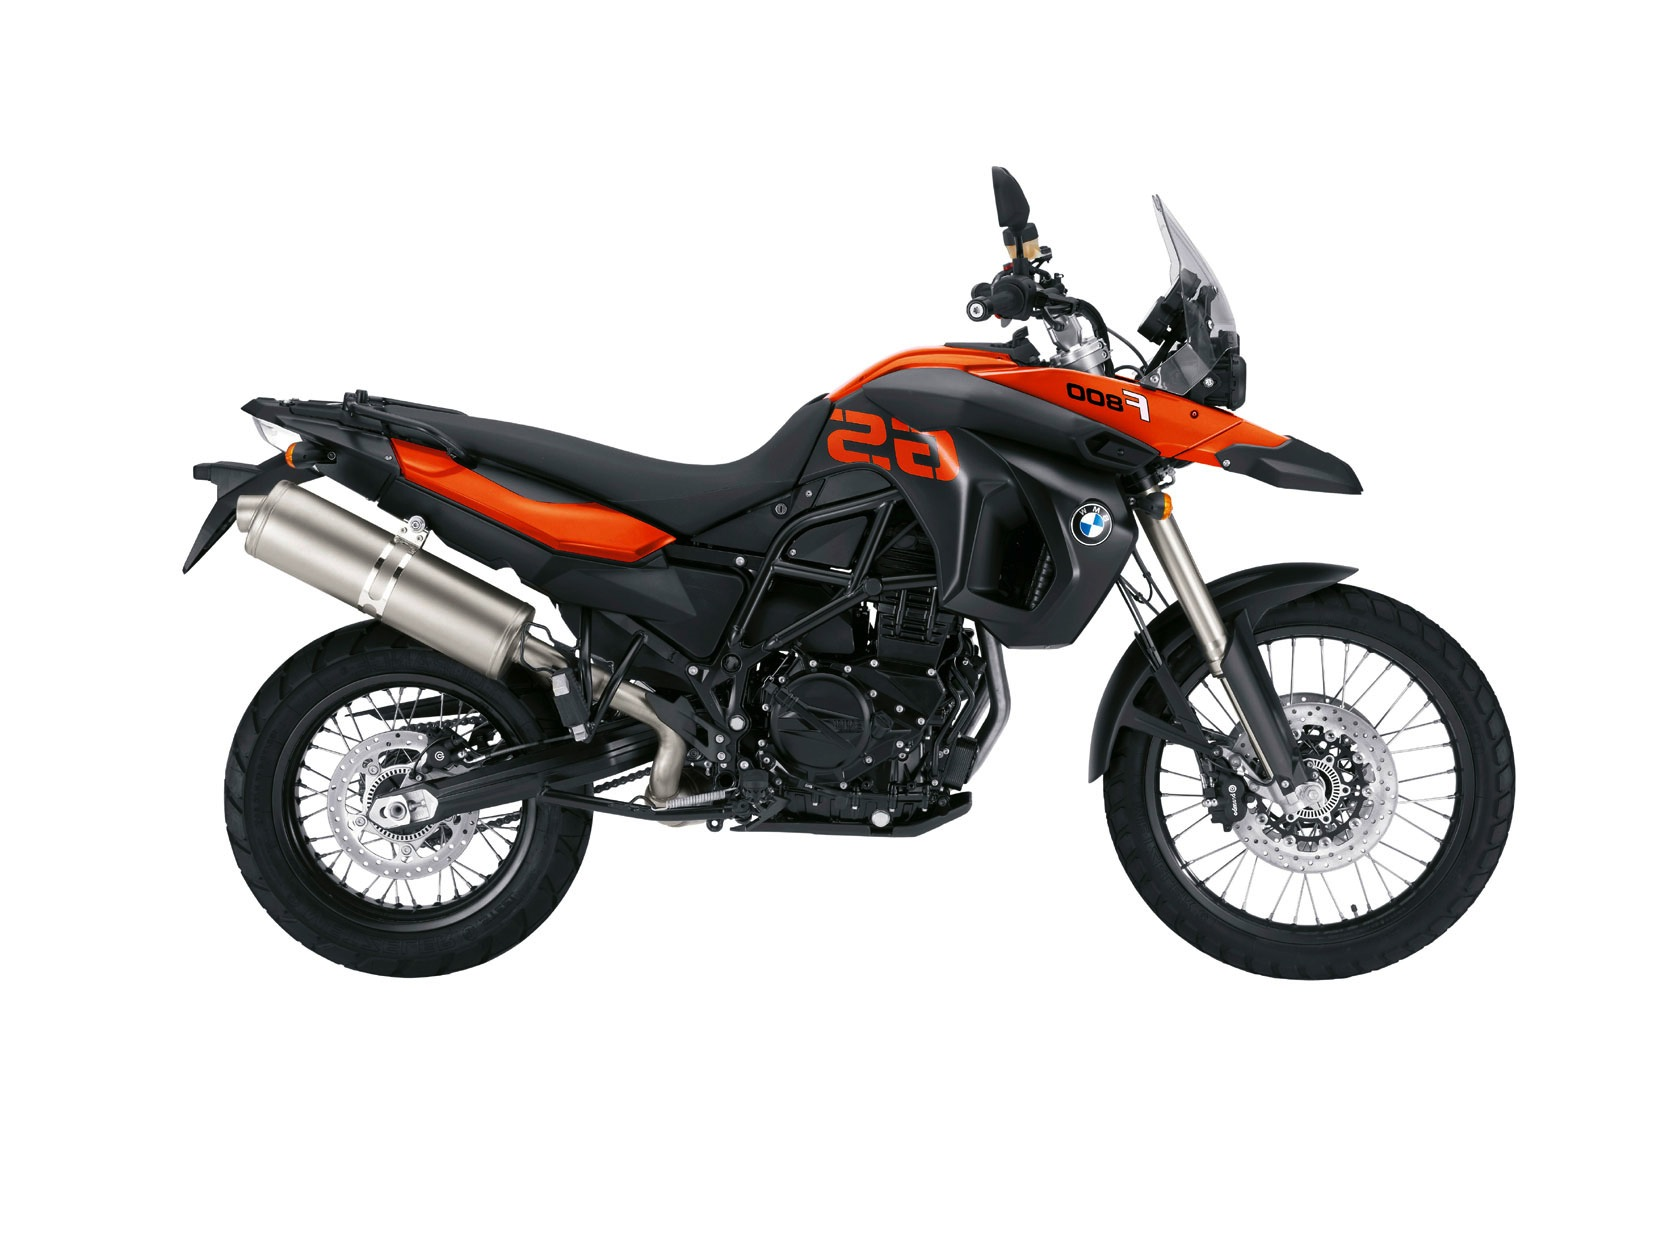 2010-BMW-F800GS-Orange-Side-view.jpg